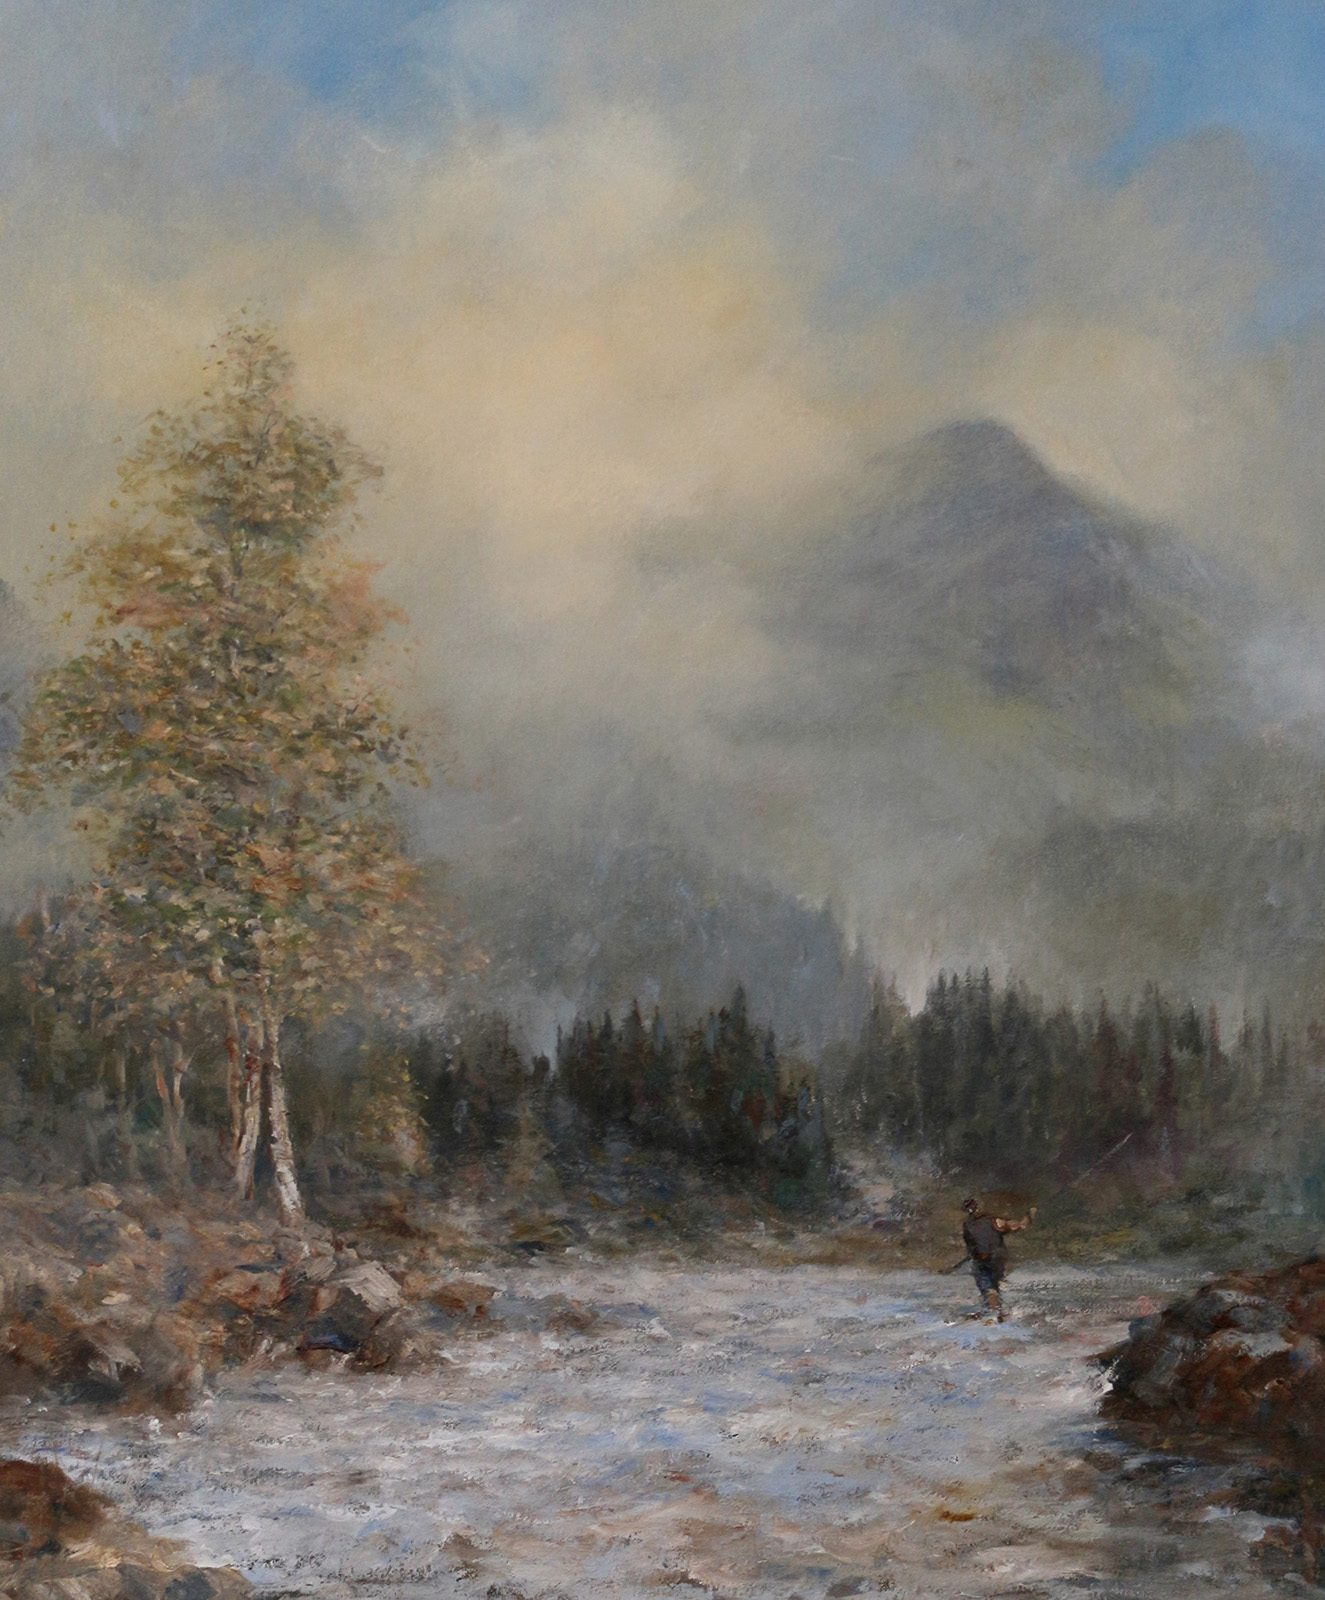 Oil painting of fly fisherman in Scottish landscape by Stewart Taylor